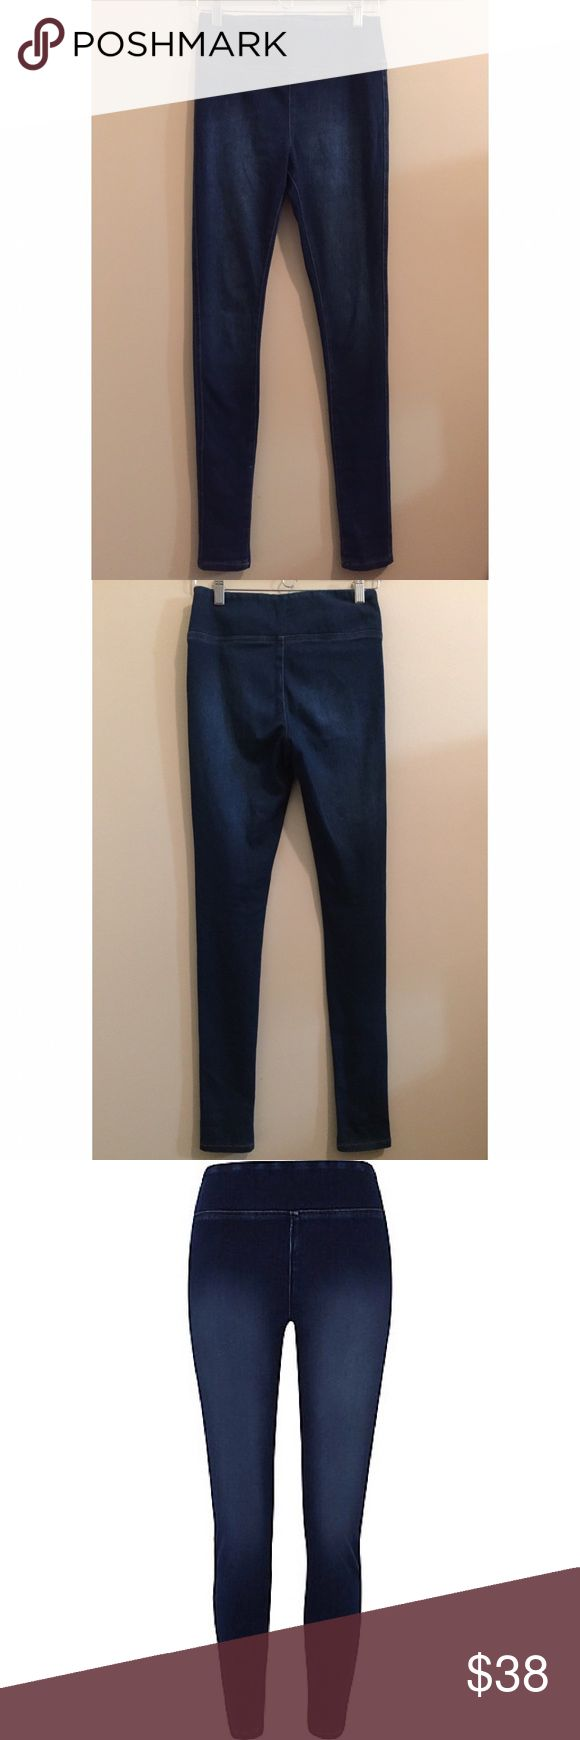 River Island Dark Wash Jegging Pants - Never worn (tag removed) - High waisted - Denim look - River Island Pants